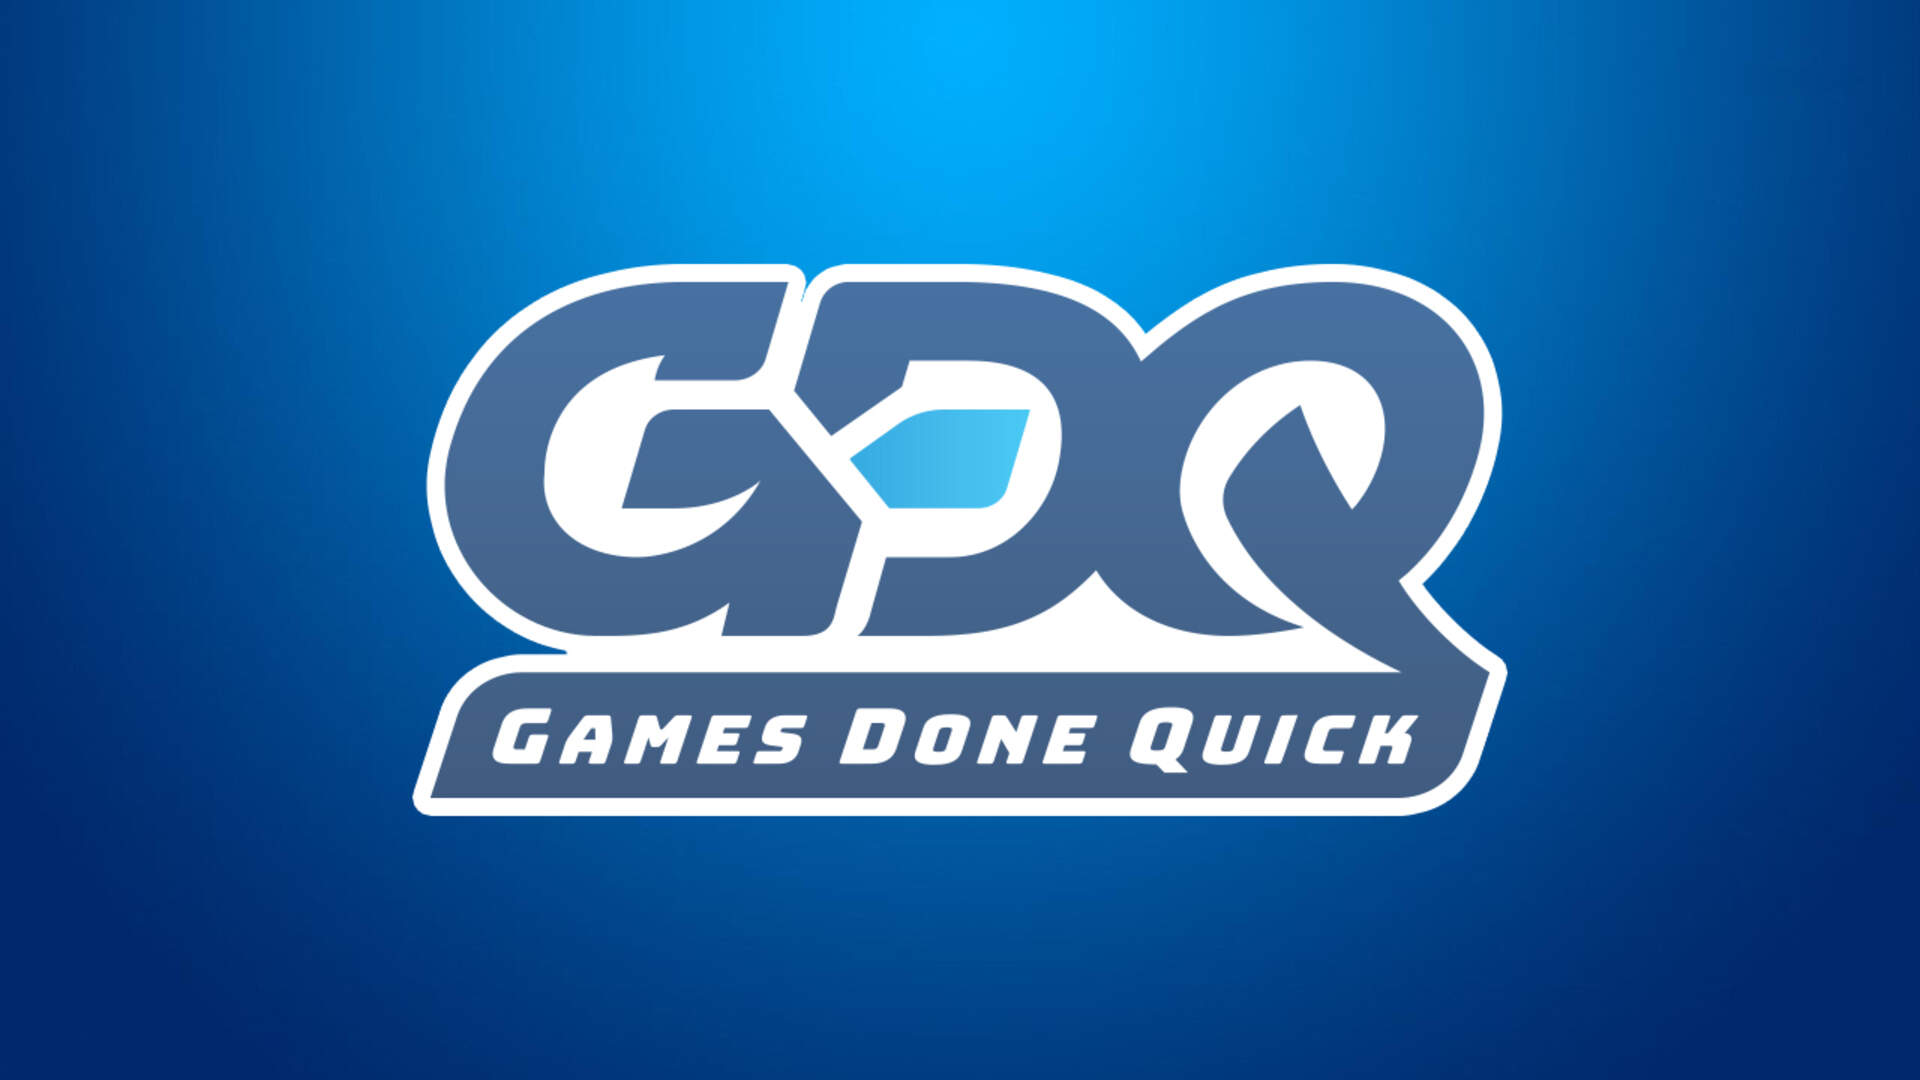 Summer Games Done Quick 2020 Raises $2.3 Million With Online Event